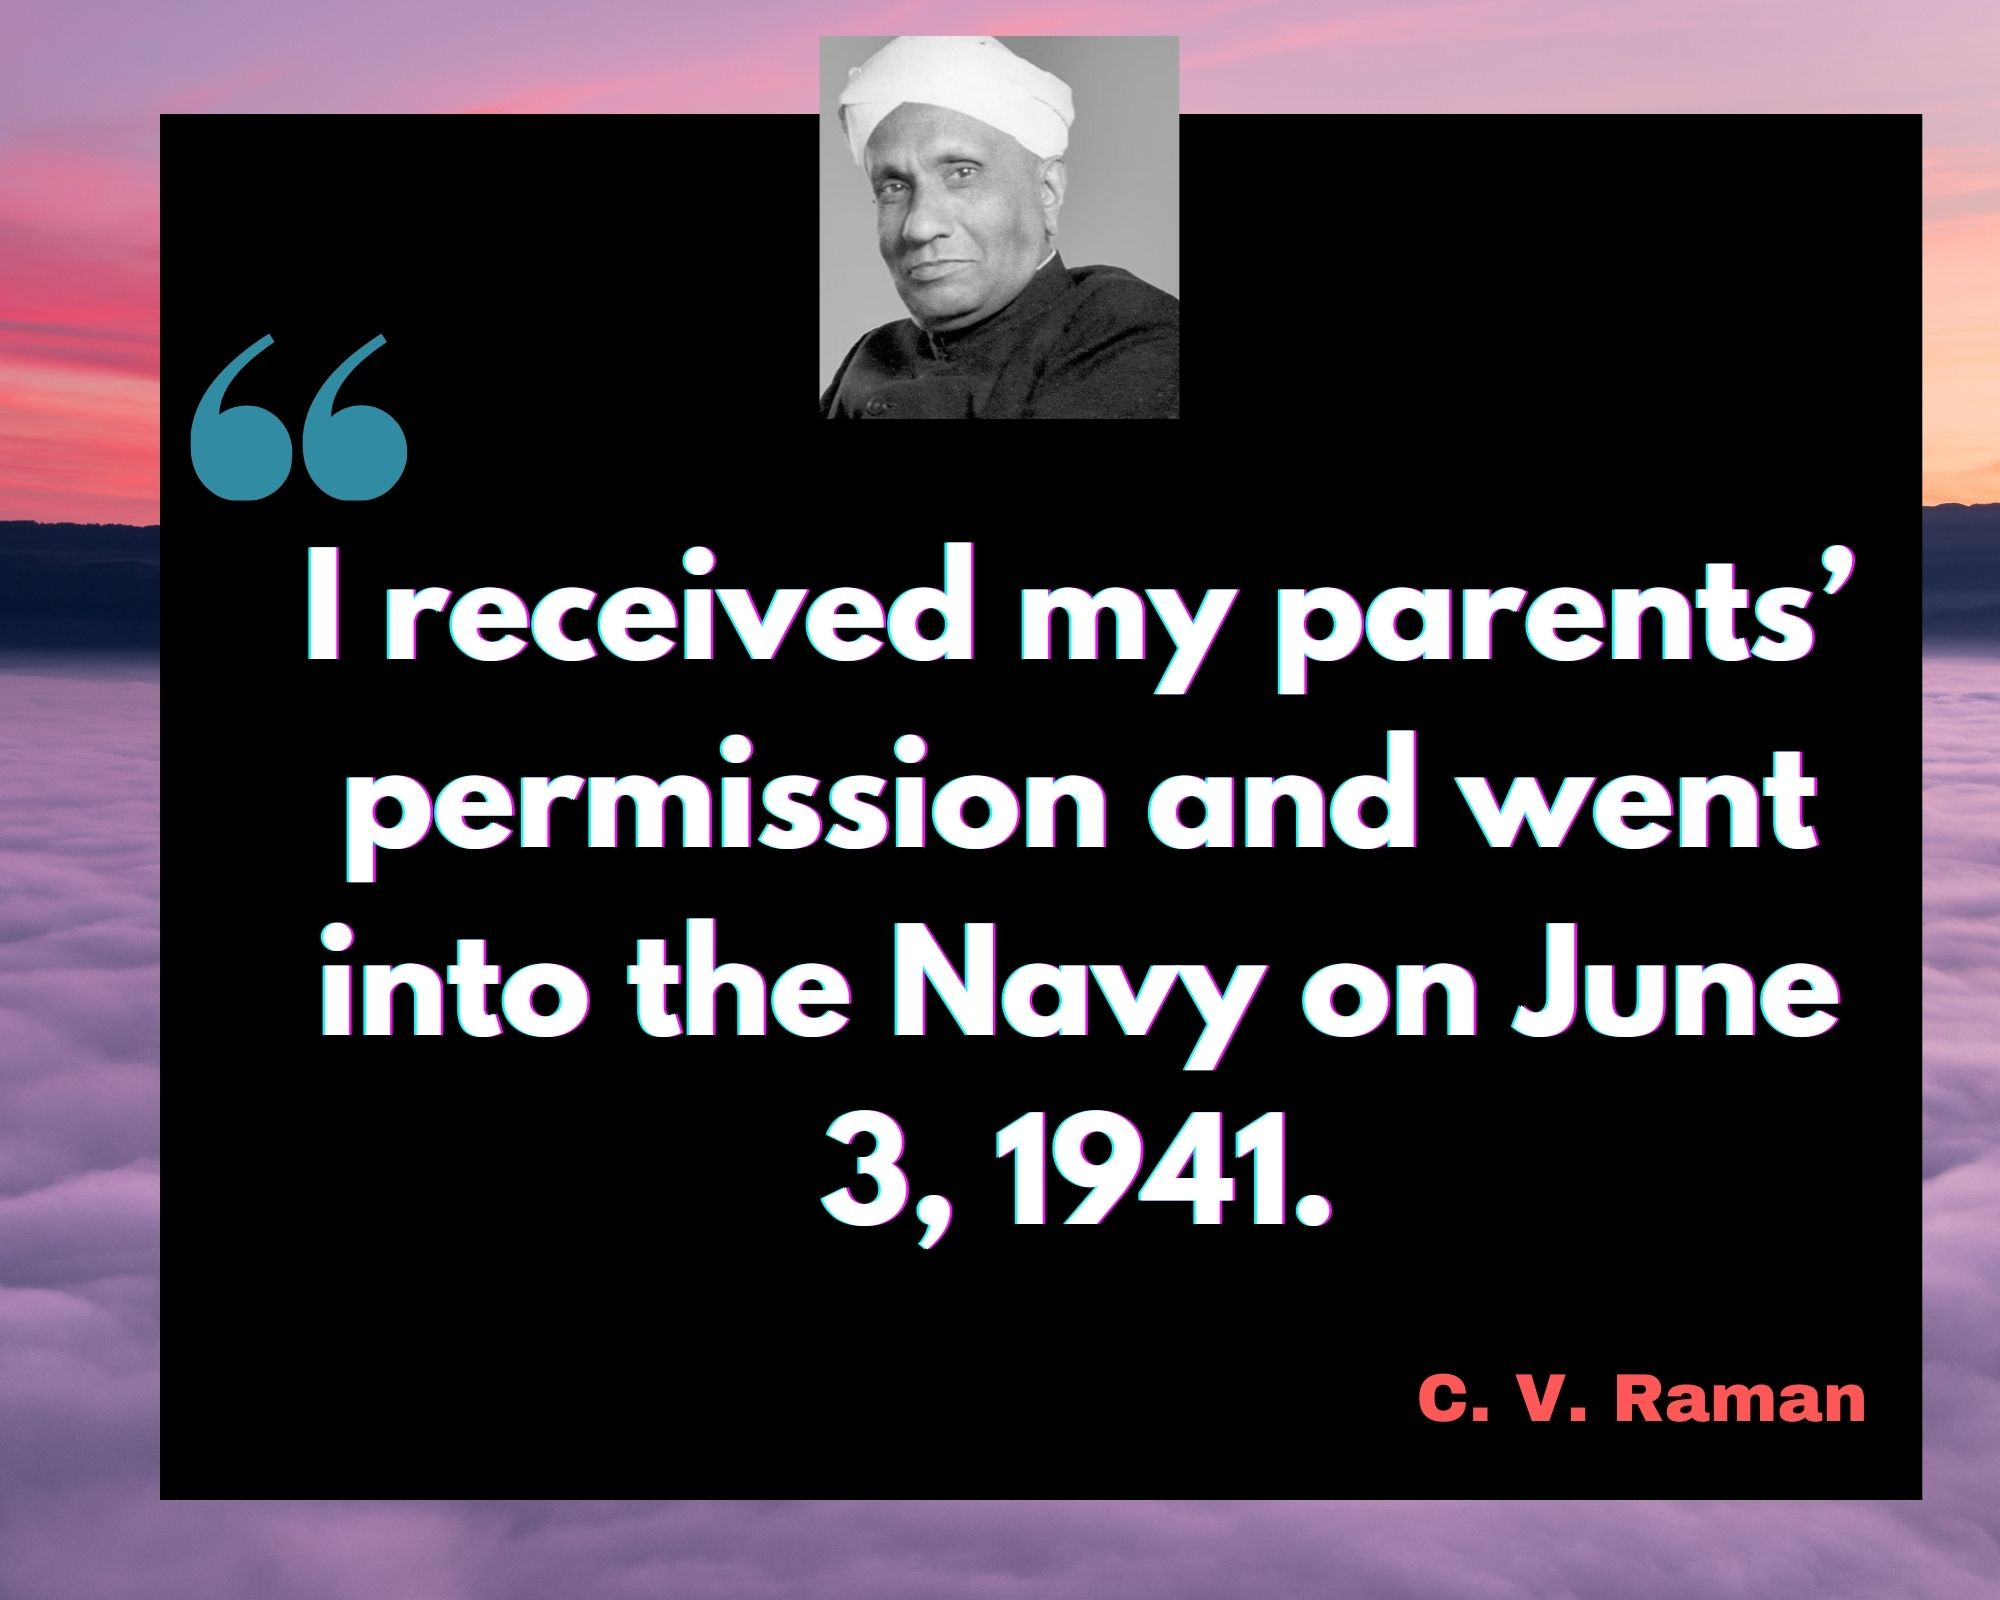 Inspirational C V Raman Quotes For Success In Life